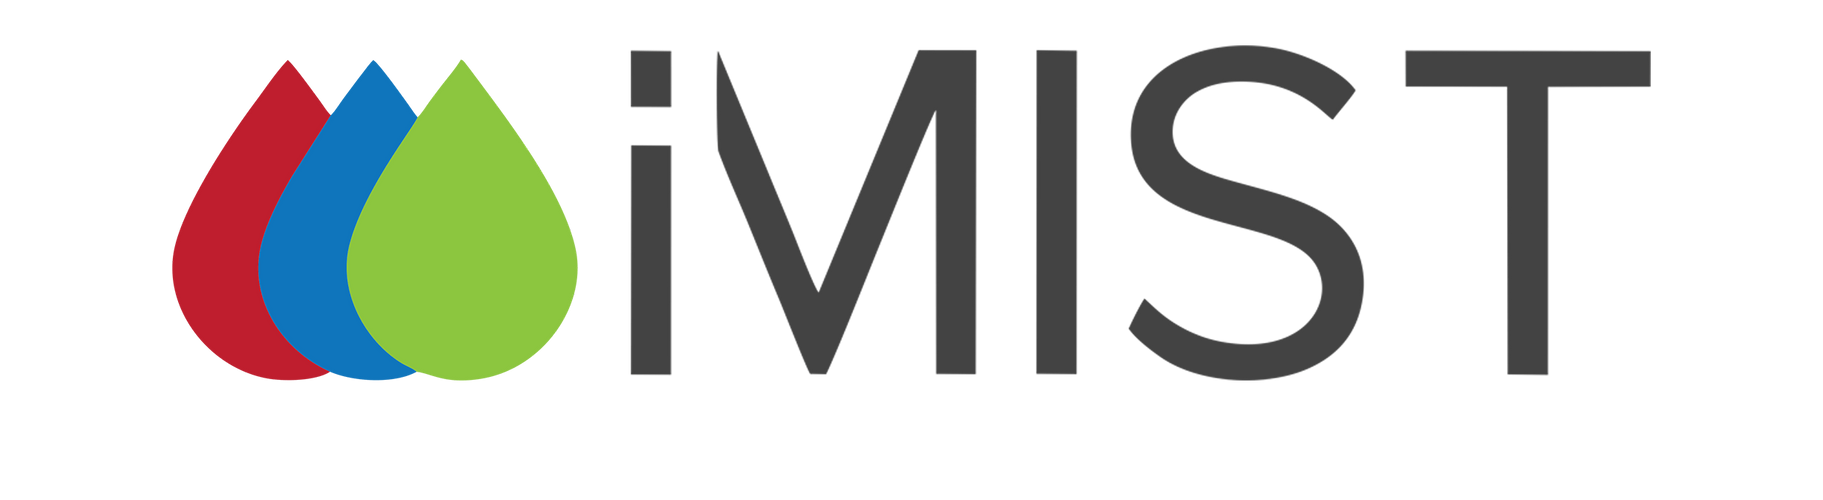 cropped-iMist-Logo-grey-no-crop-1-2.png